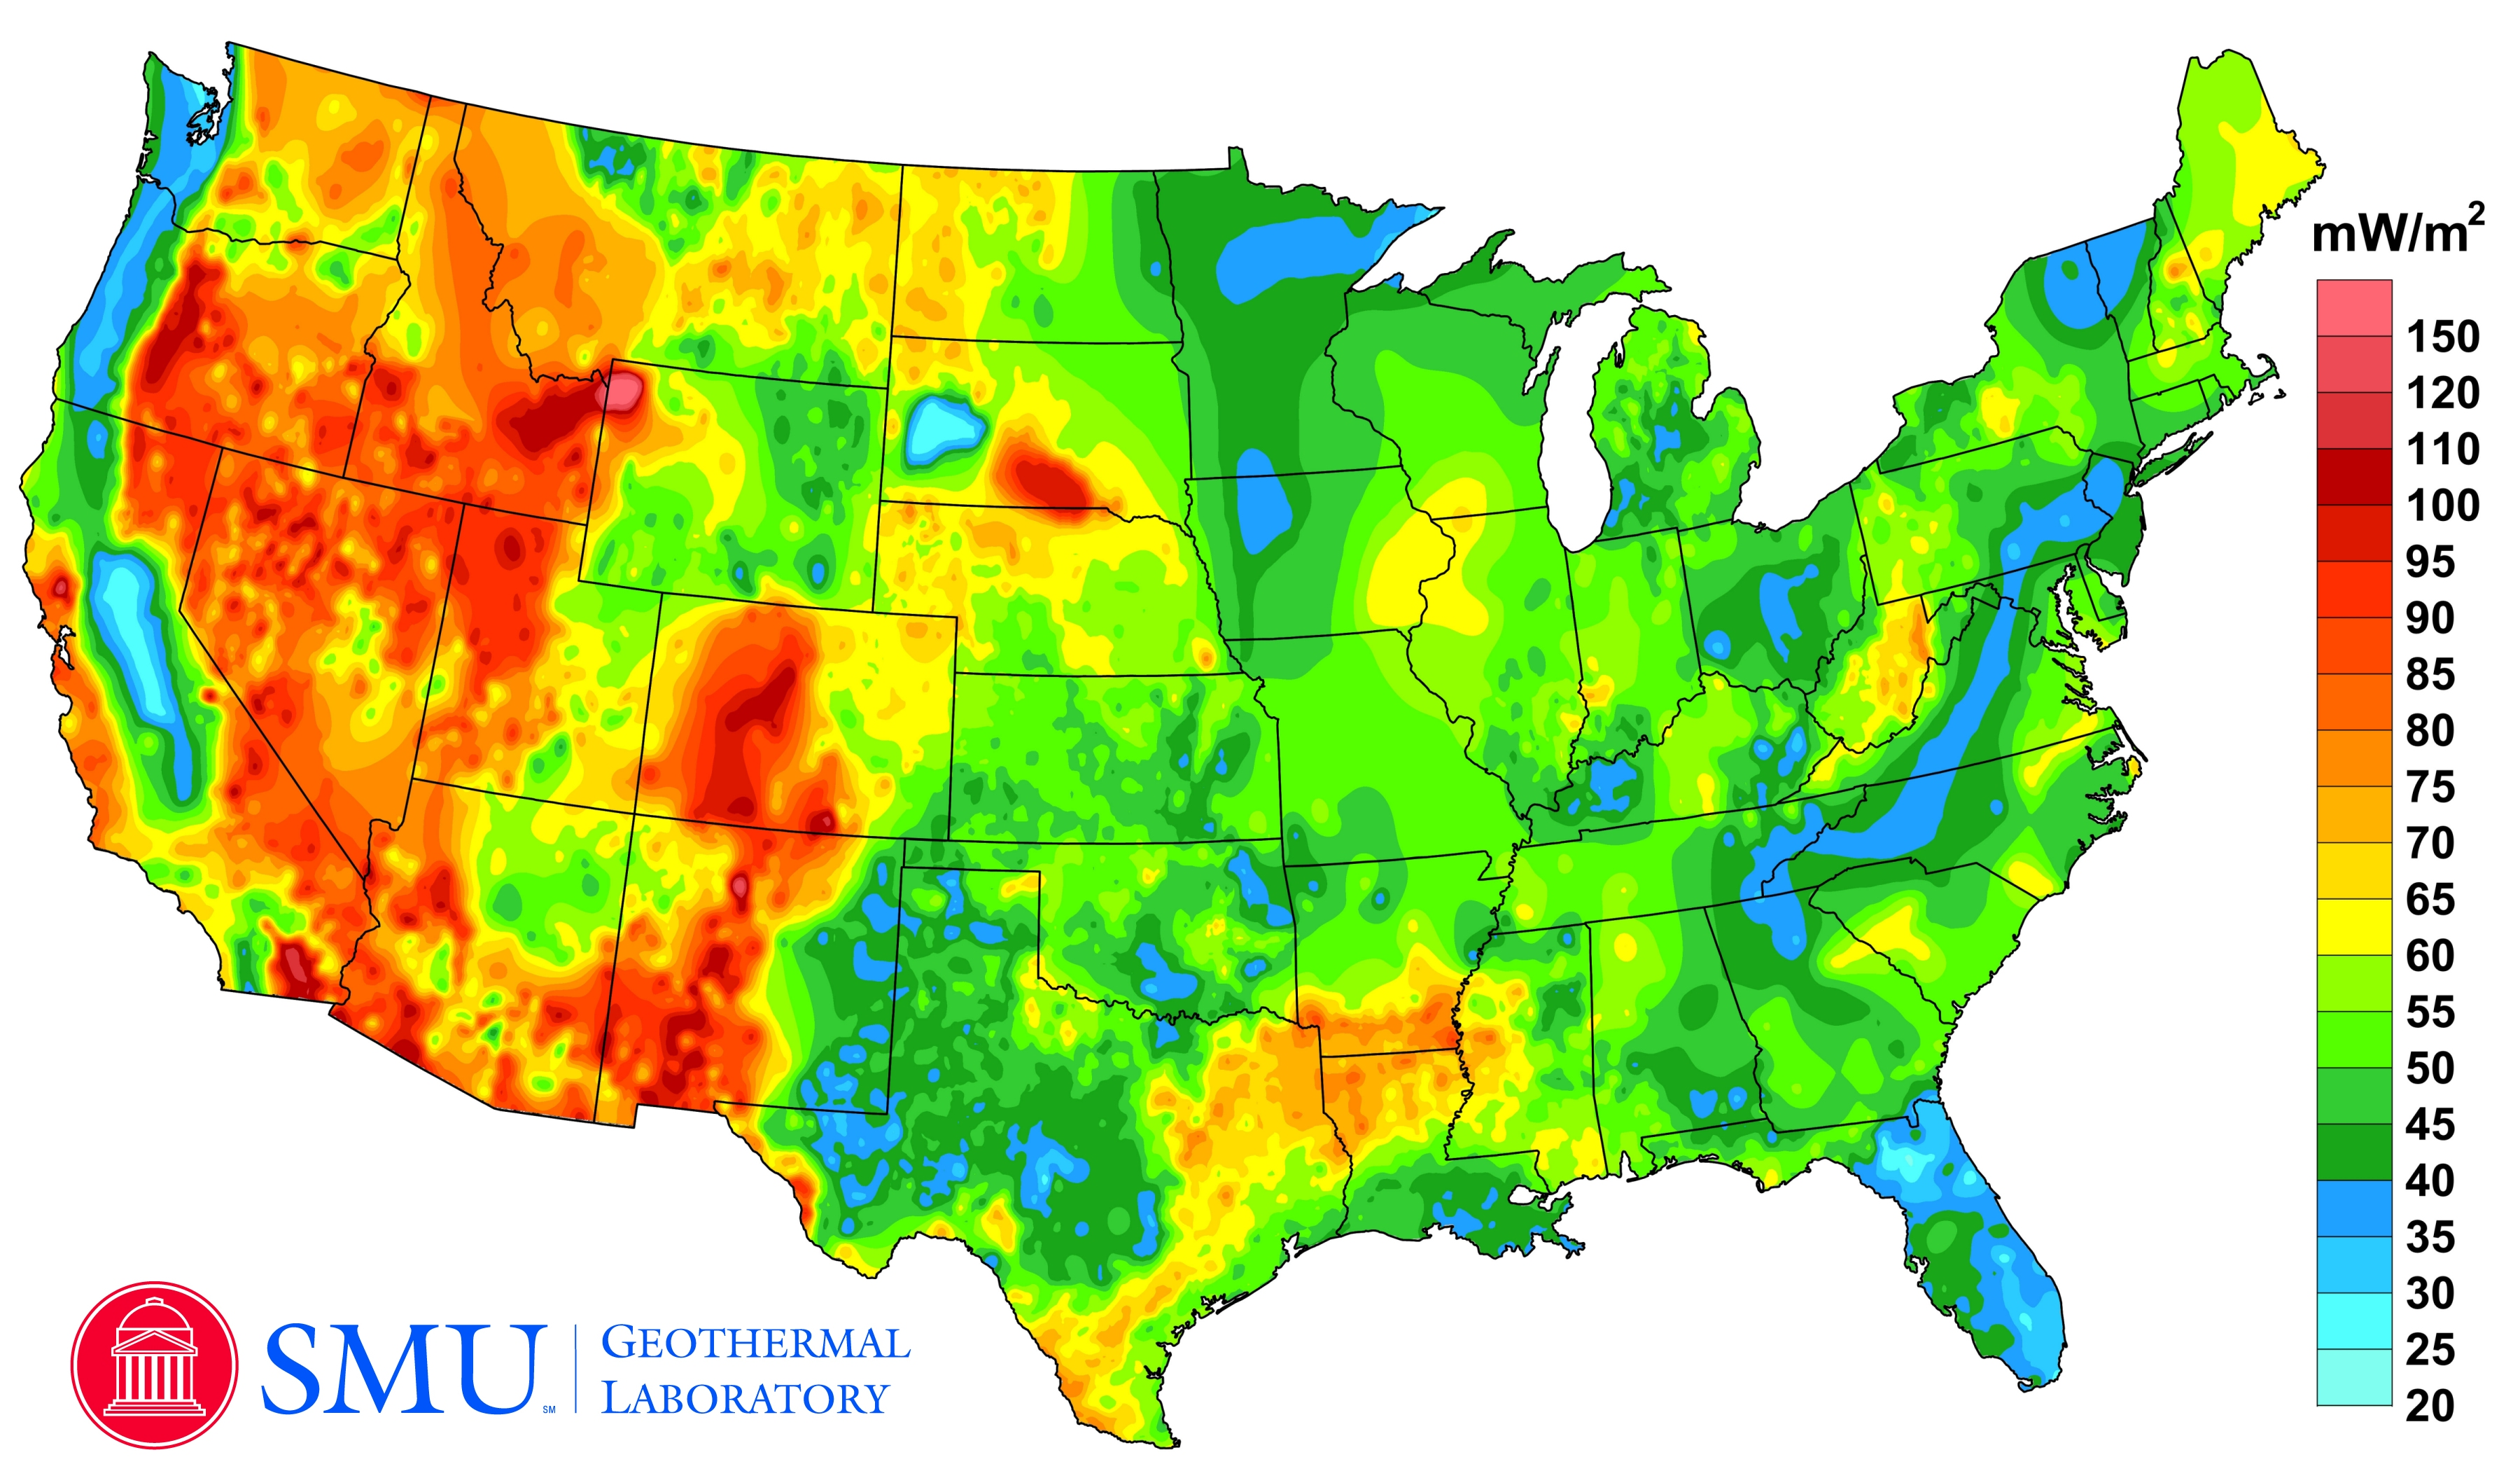 Geothermal Current Maps Dedman College SMU - Us map gradient generator